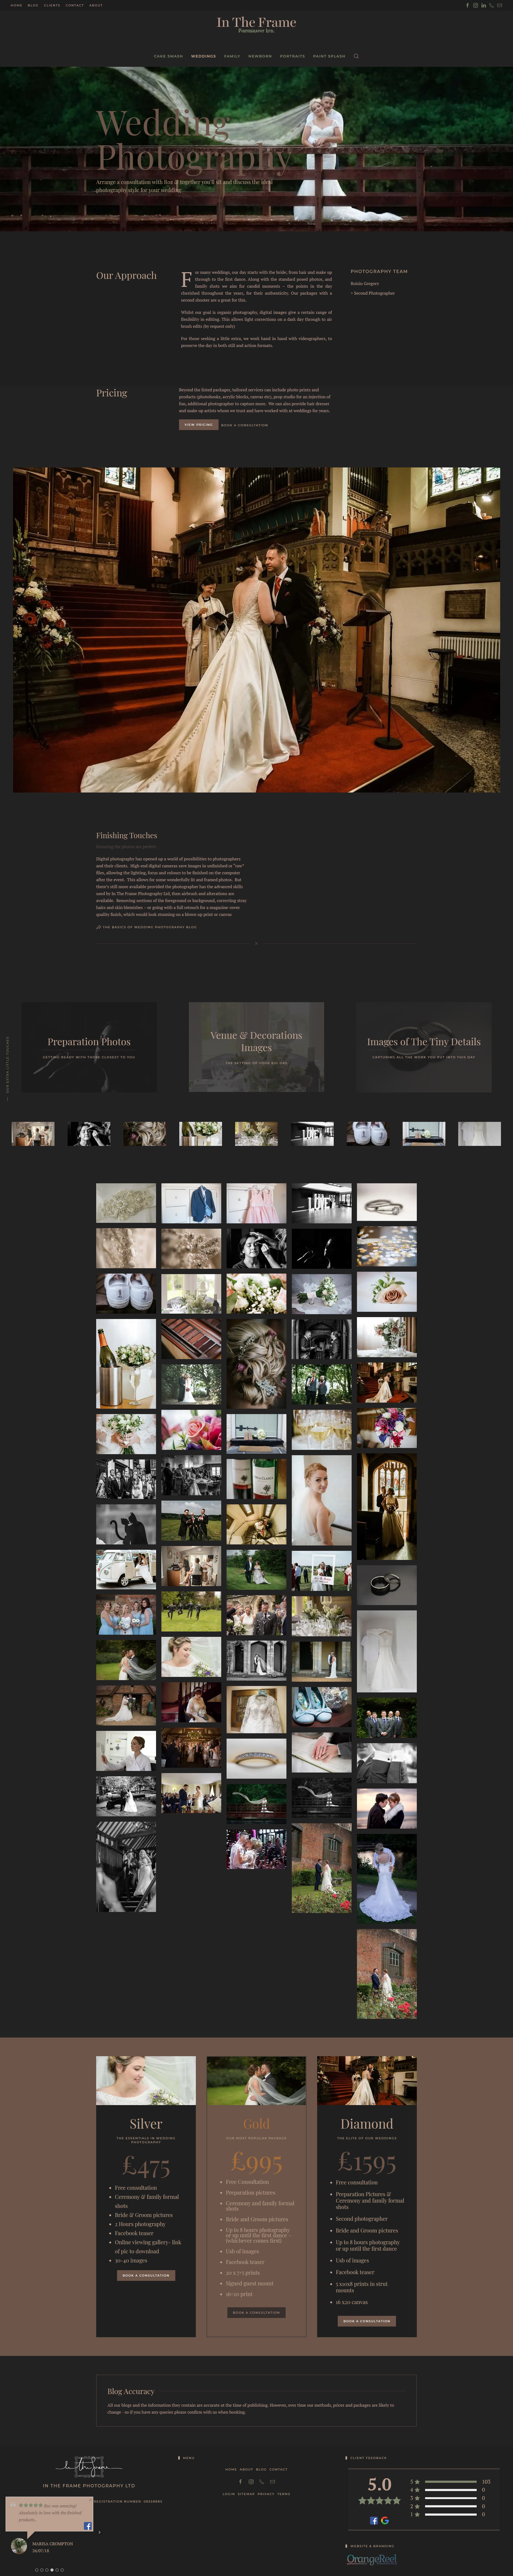 In The Frame Photography Ltd Website